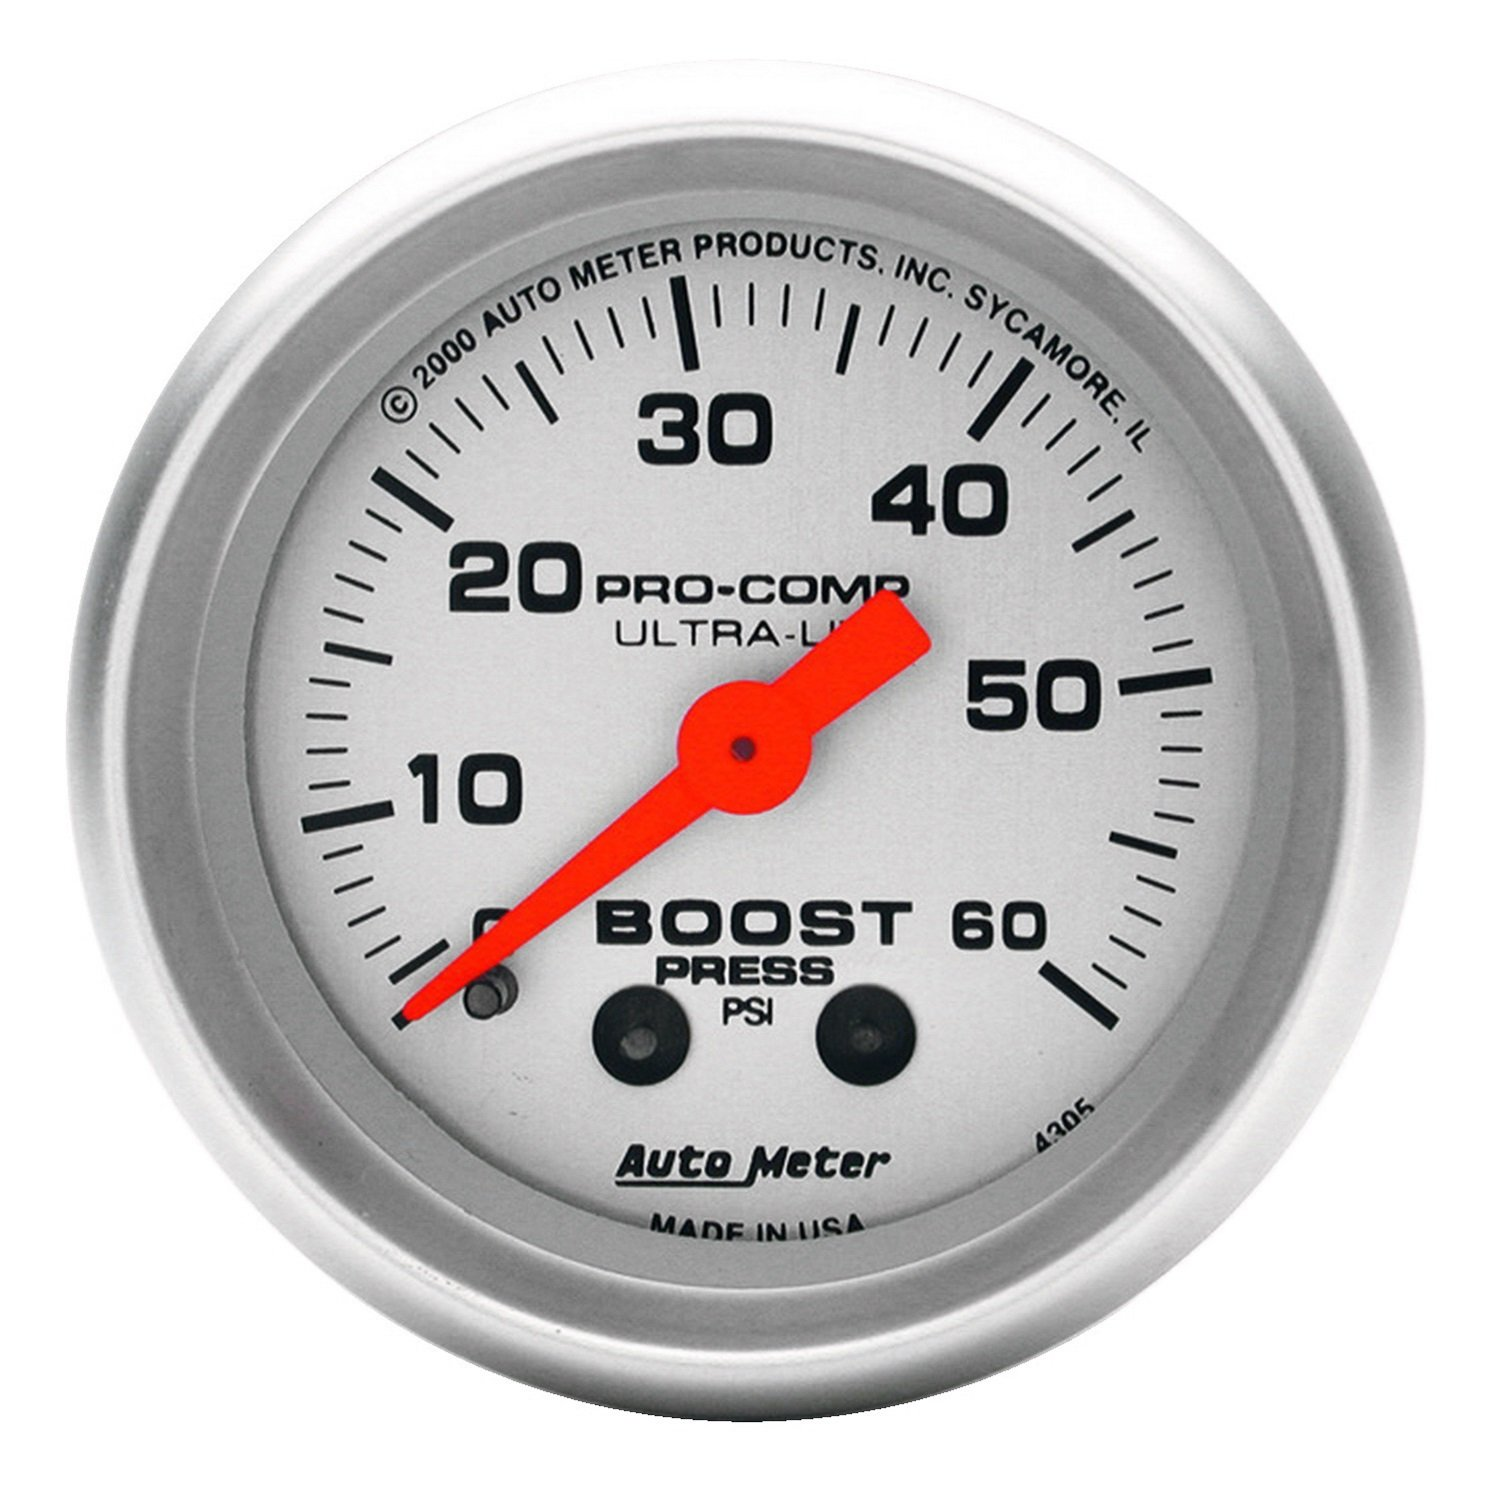 Amazon.com: Auto Meter 4305 Ultra-Lite Mechanical Boost Gauge: Automotive